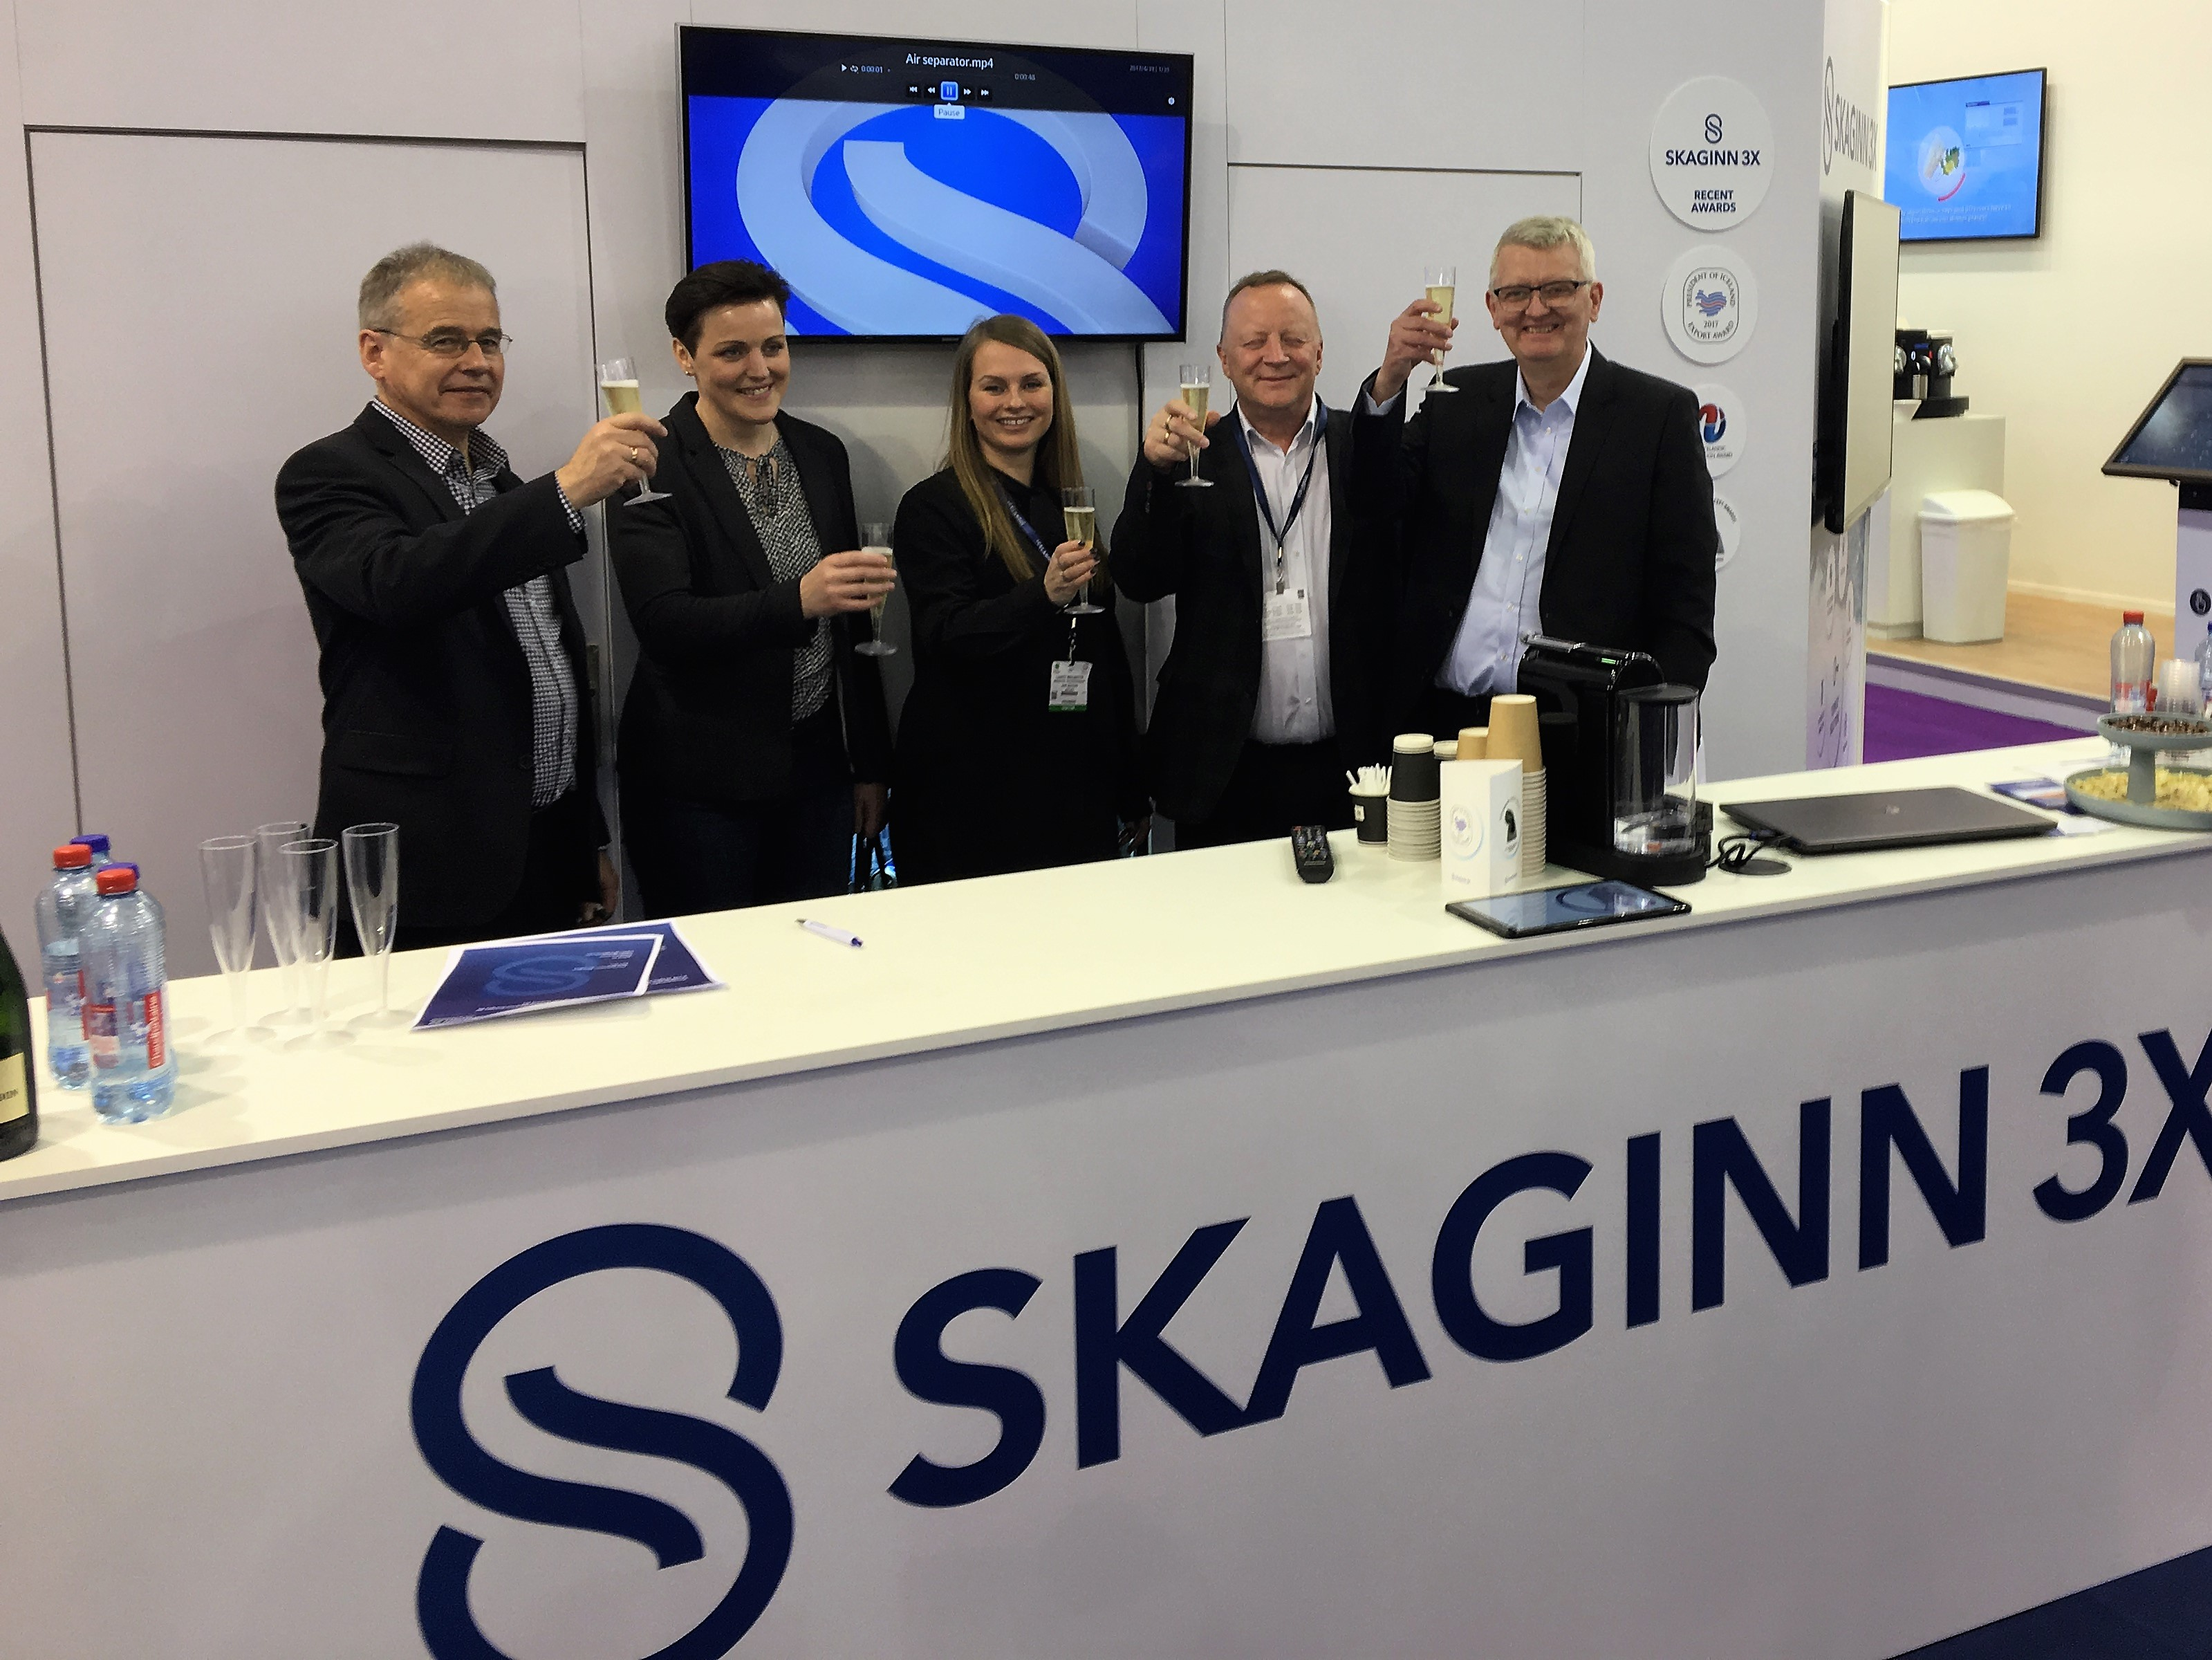 Skaginn 3X signed the contract on 25th April 2017 to provide processing deck equipment for a new fish trawler Drangey SK2 put to sea last week in Turkey.